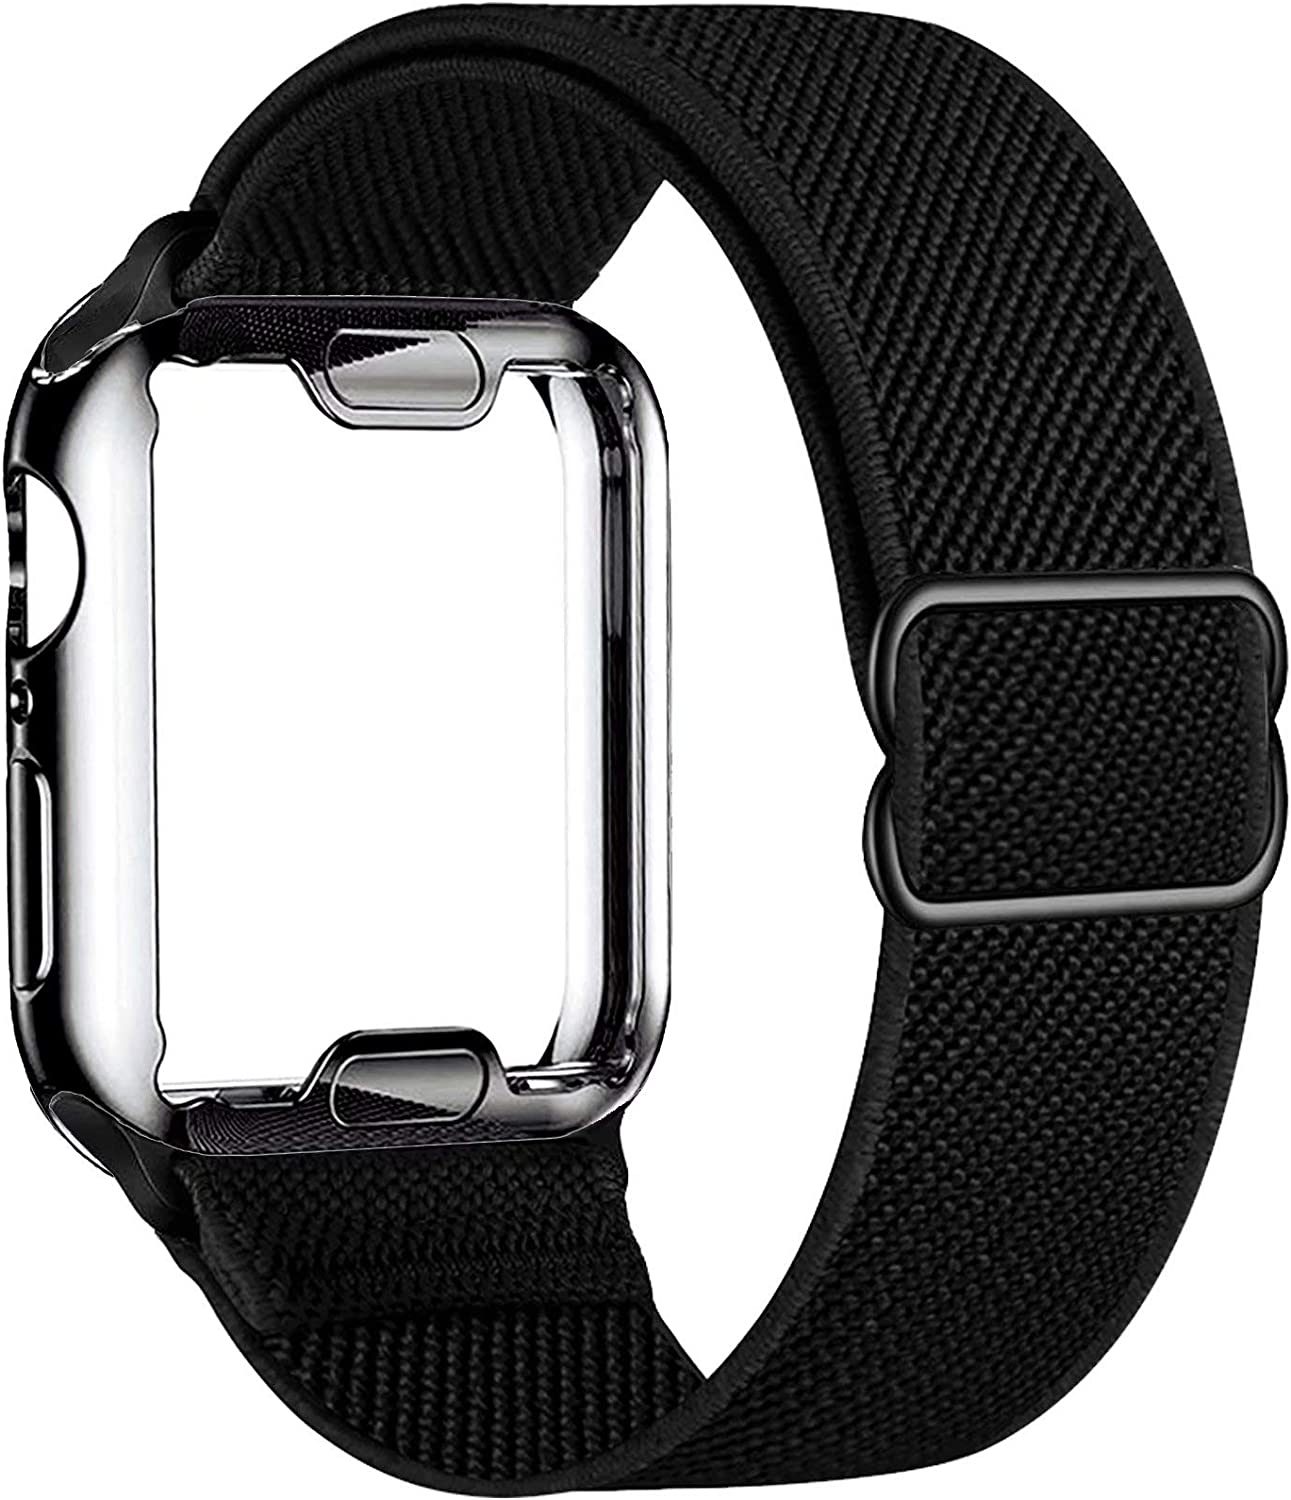 ADWLOF Stretchy Solo Loop with Screen Protector Case Compatible with Apple Watch Bands 38mm,Adjustable Braided Sport Nylon Elastics Men Women Compatible with iWatch Series 6/5/4/3/2/1,SE,Black